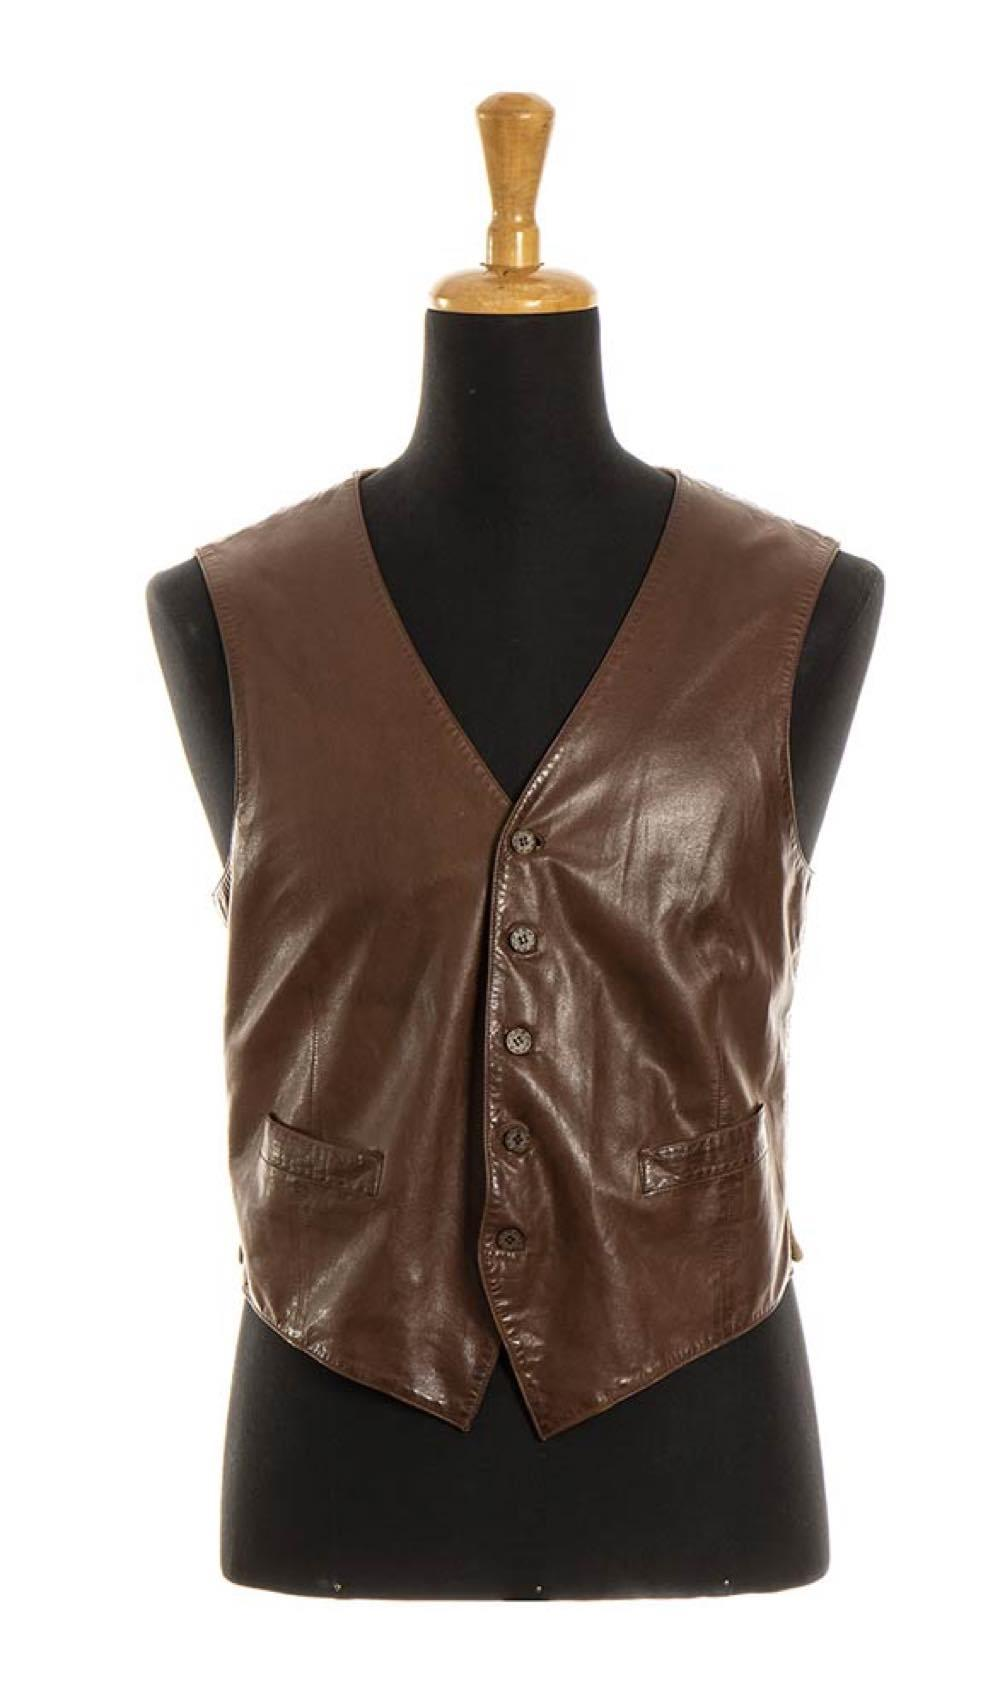 GUCCI - LEATHER VEST - Late 70s